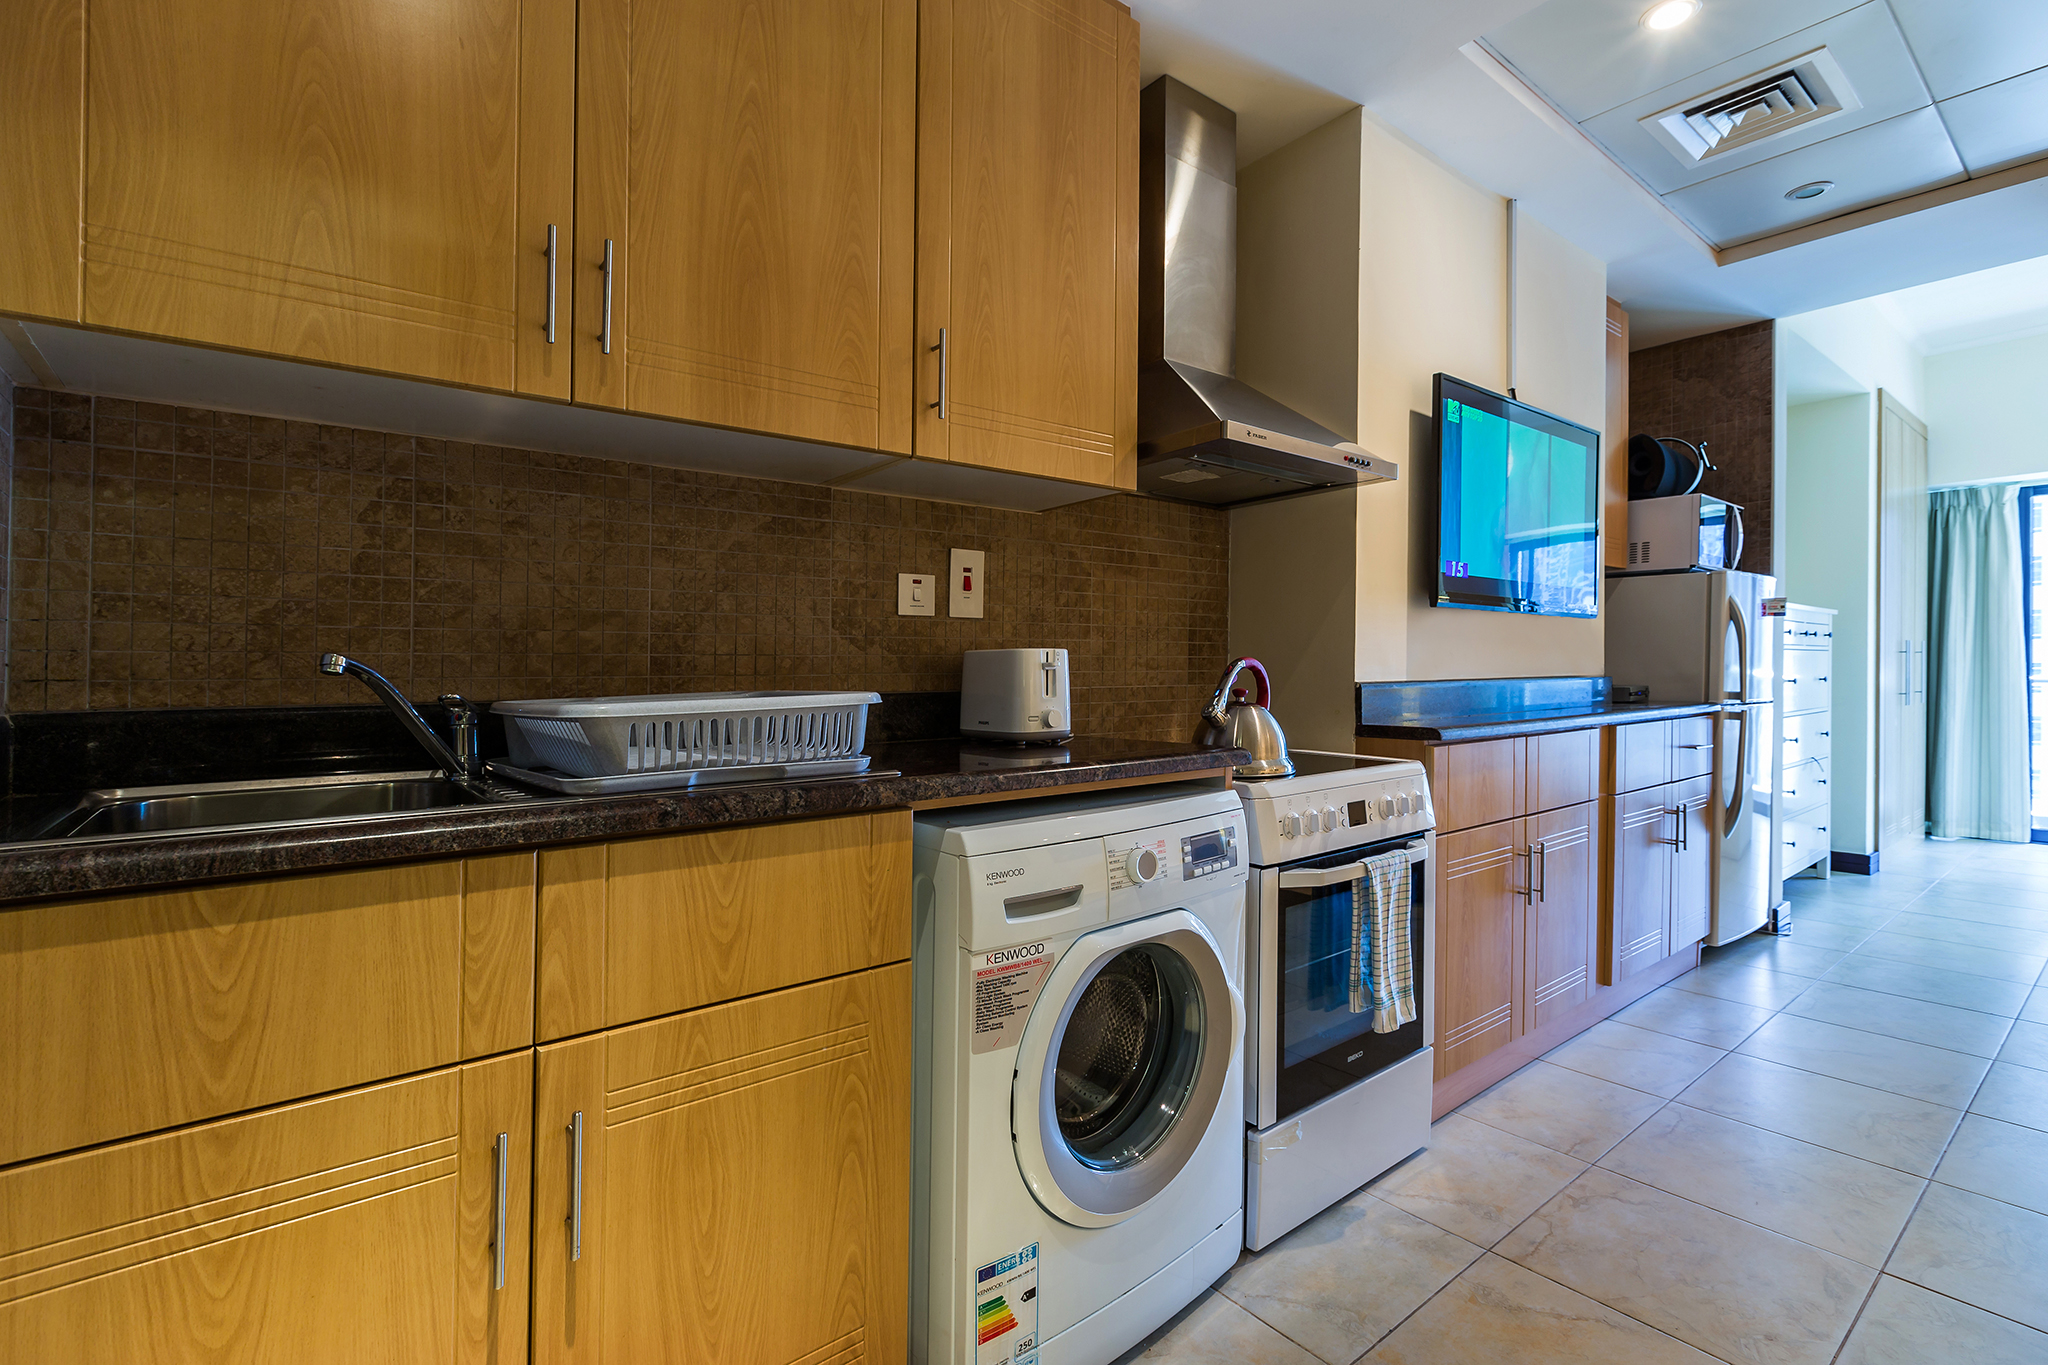 The kitchenette with all you need to feel at home including microwave, kettle, toast and fridge-freezer